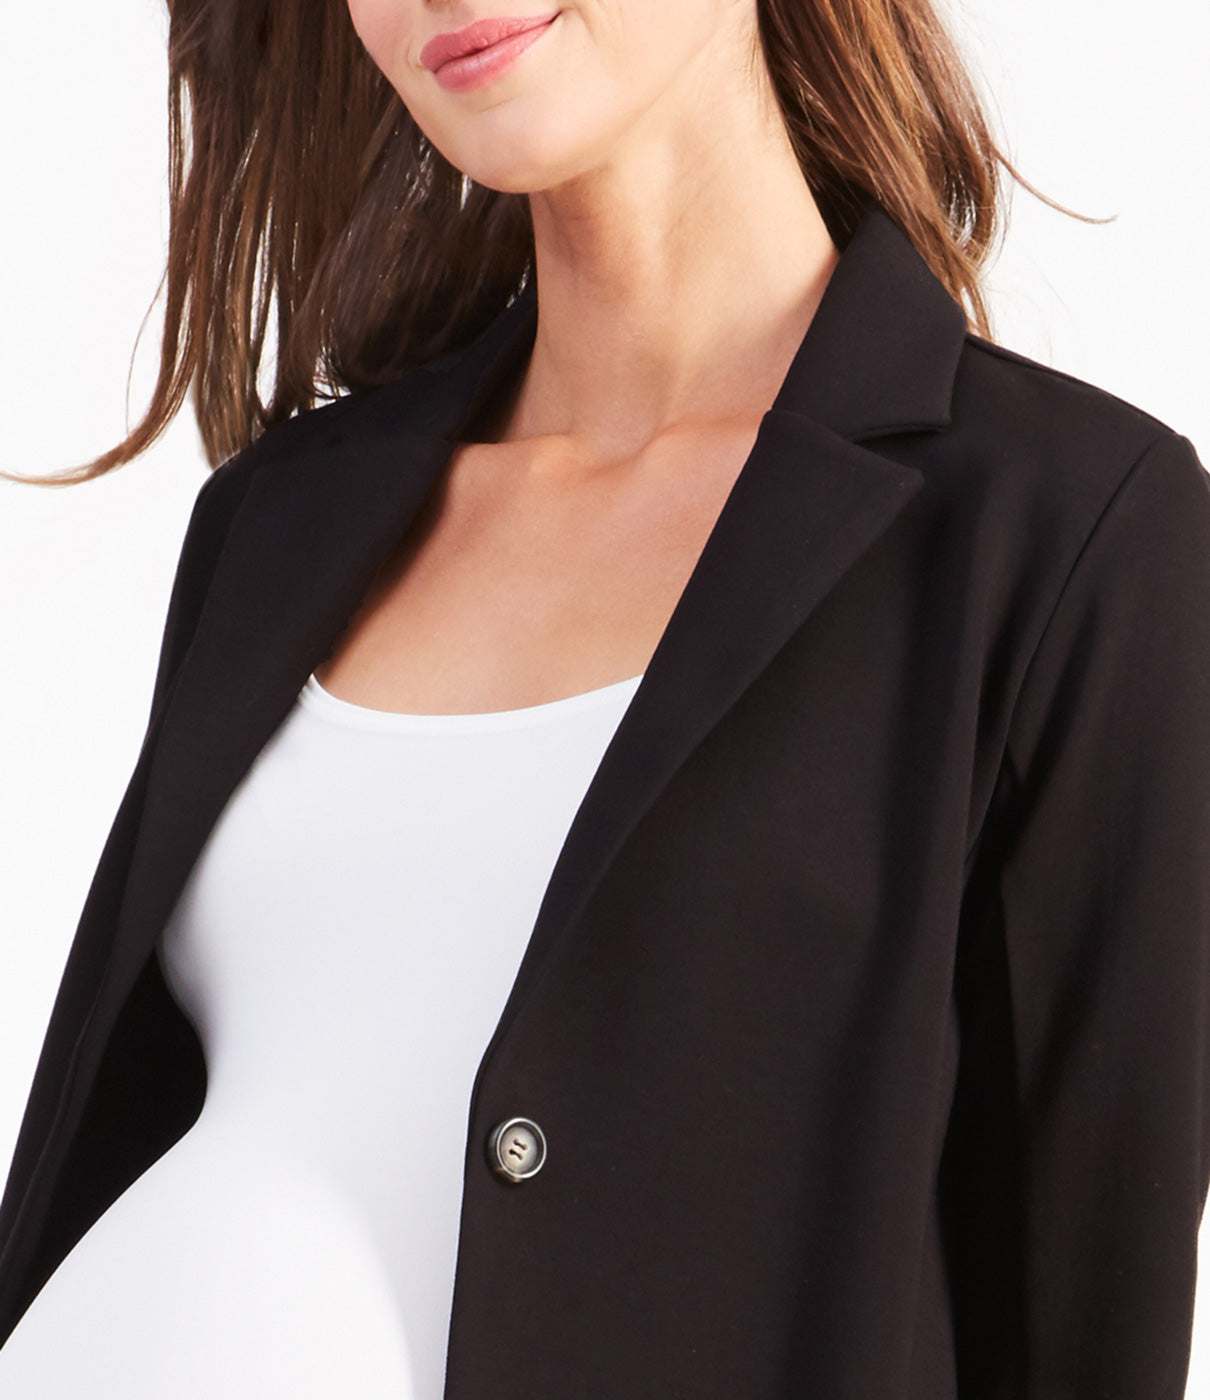 In The DetailsFeatures a slim lapel and single button closure.